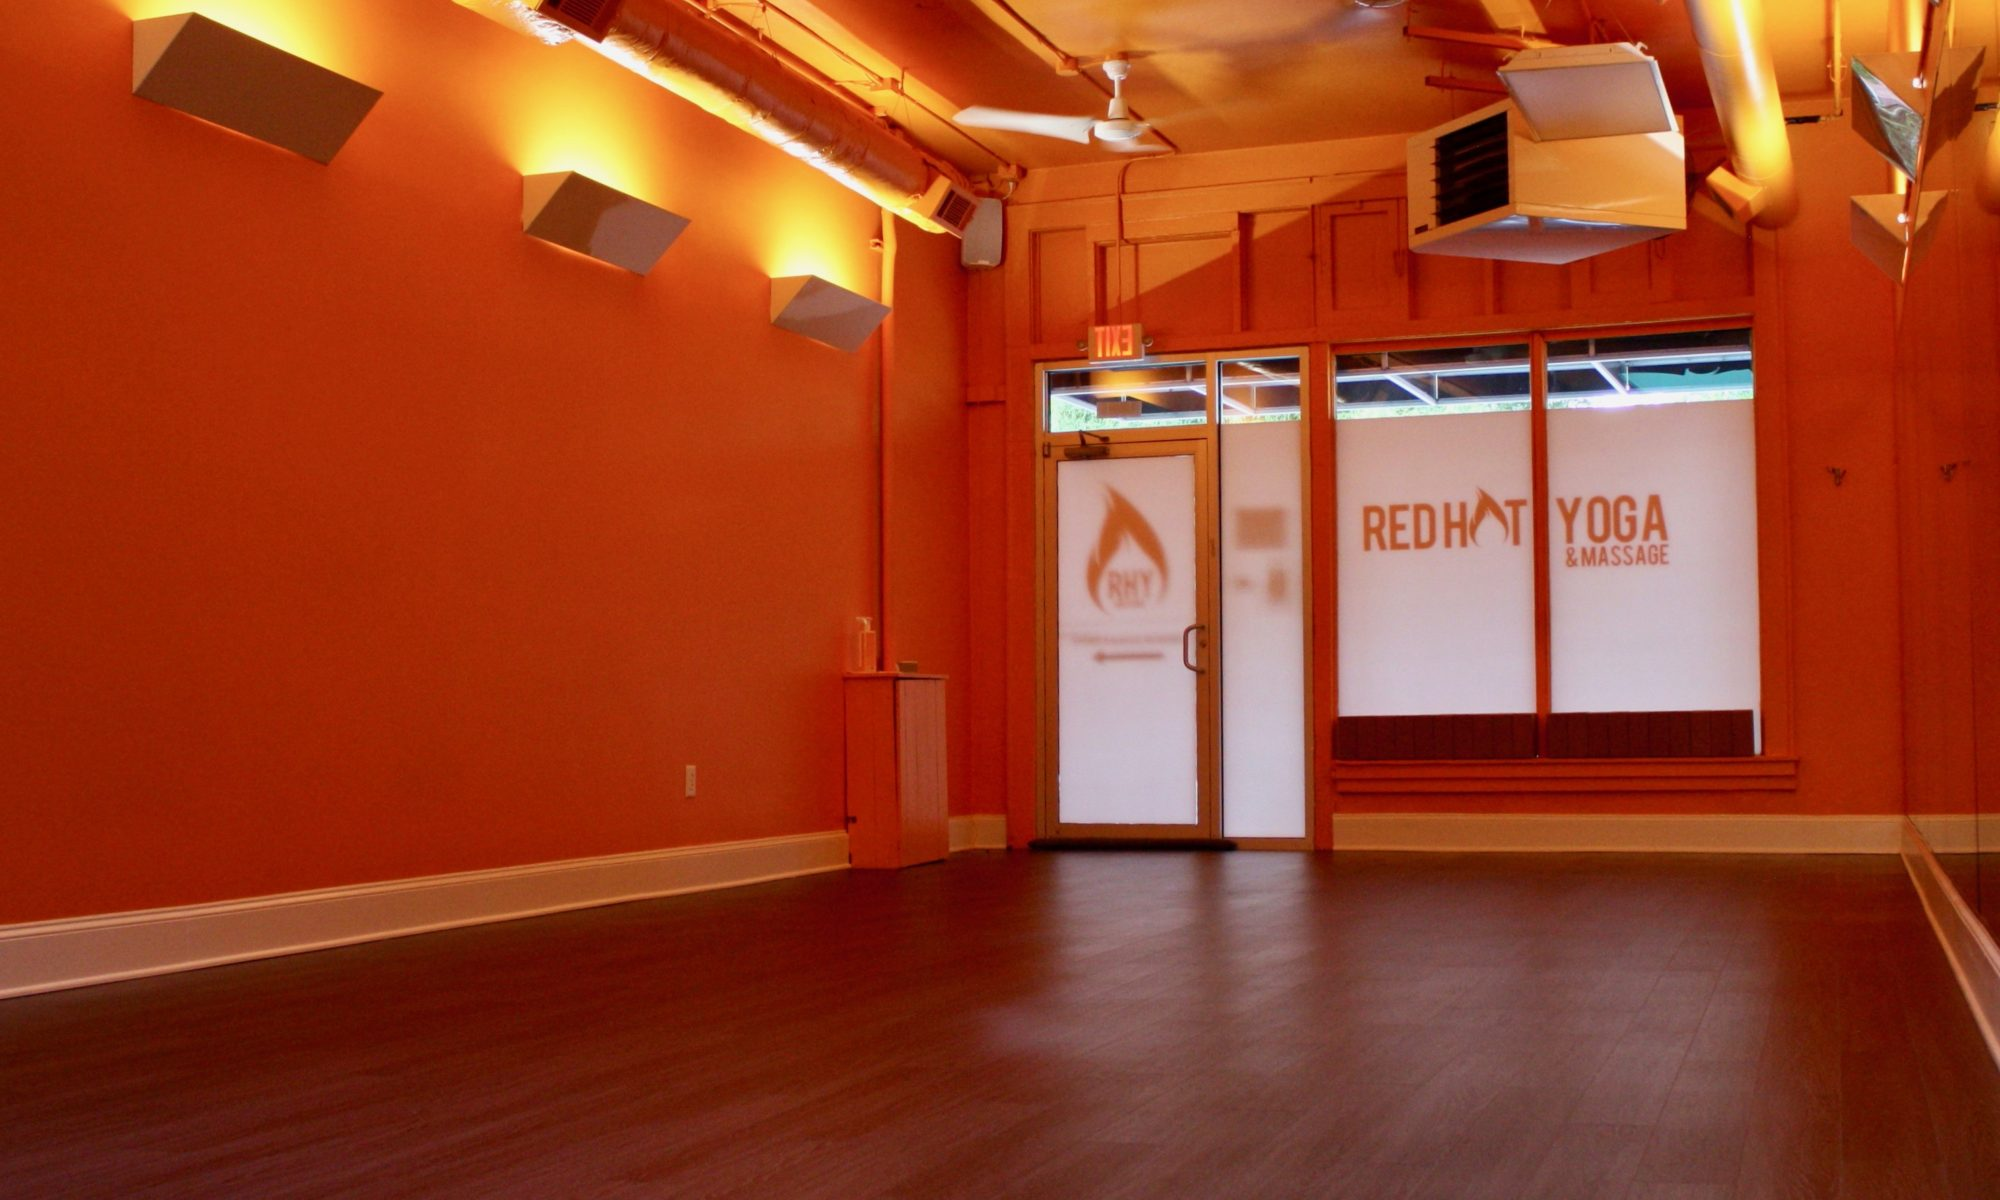 Red Hot Yoga & Massage